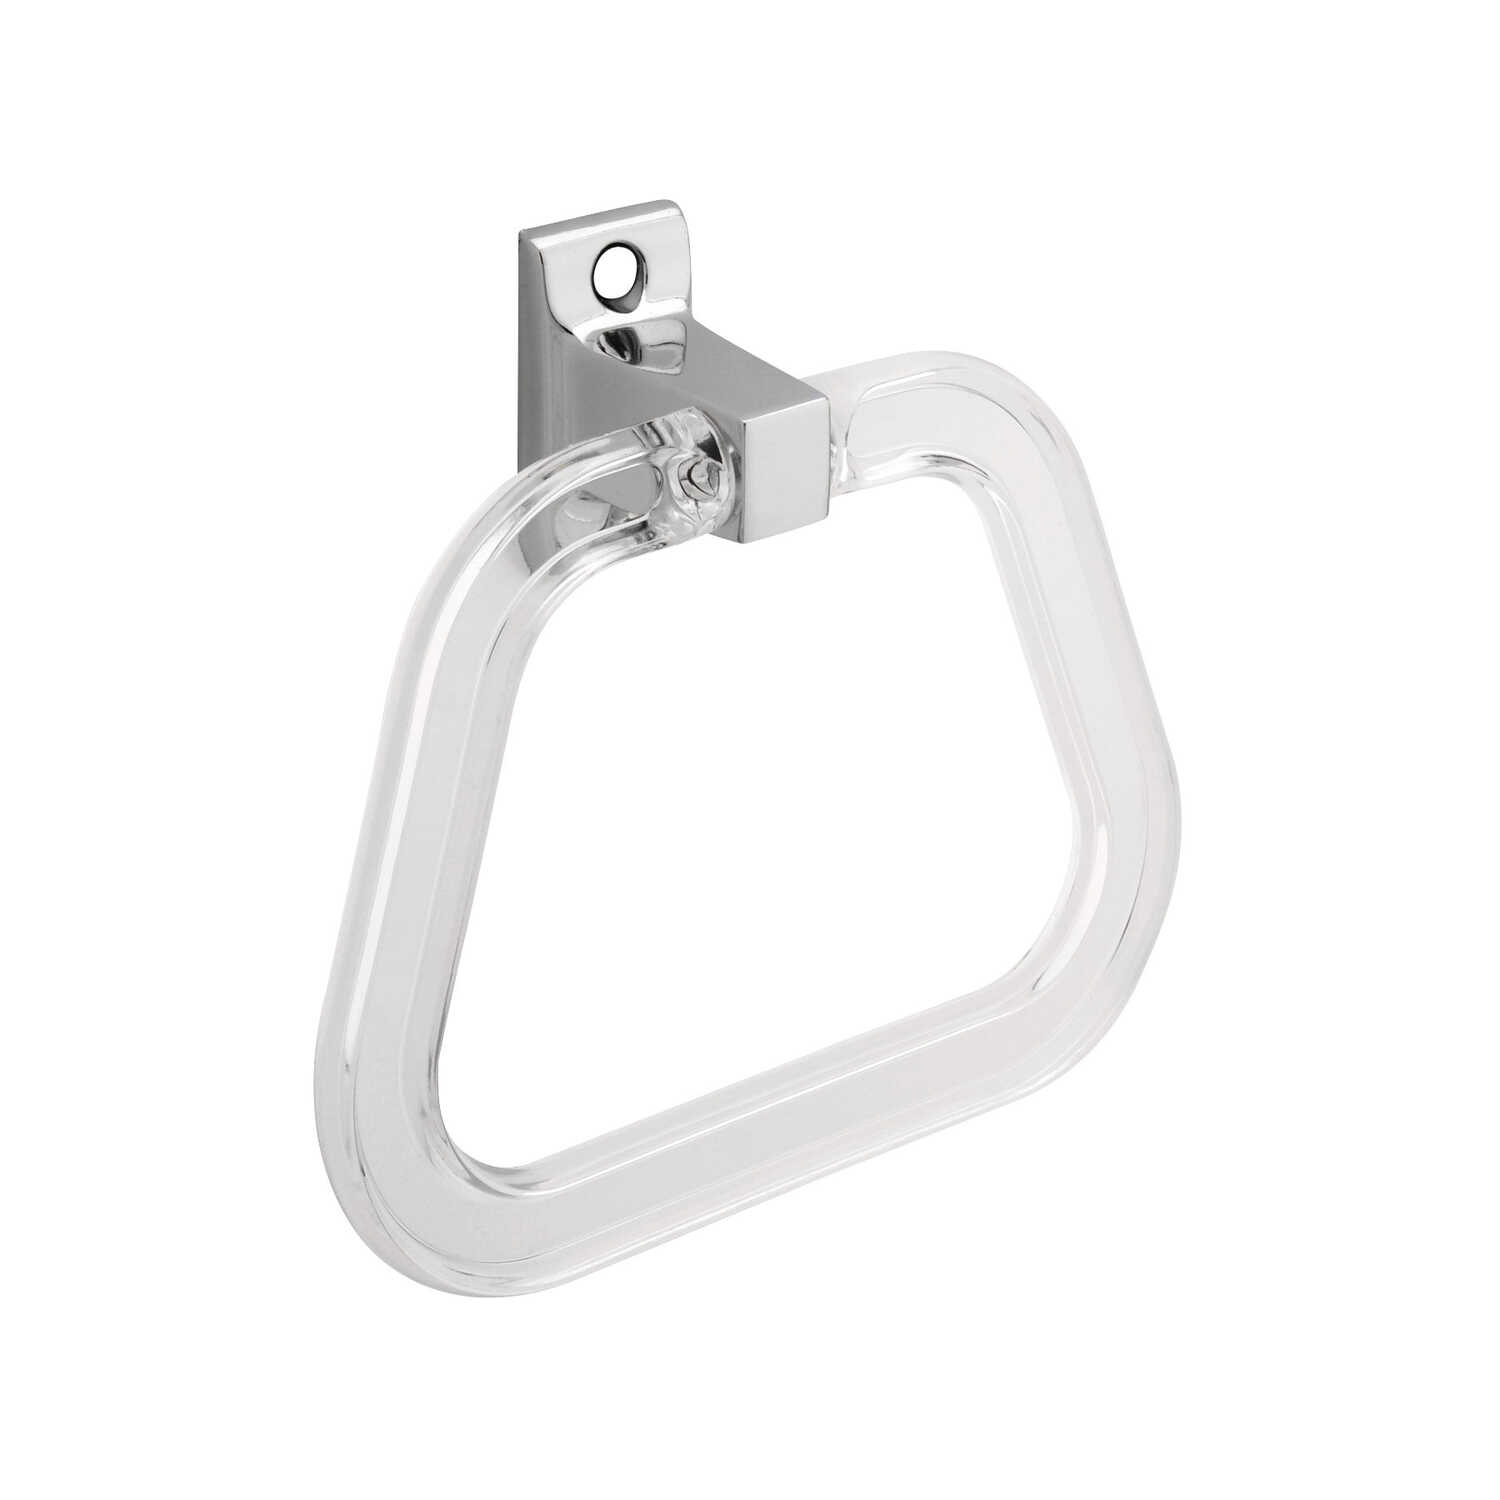 Franklin Brass  Centura  Chrome  Towel Ring  Die Cast Zinc